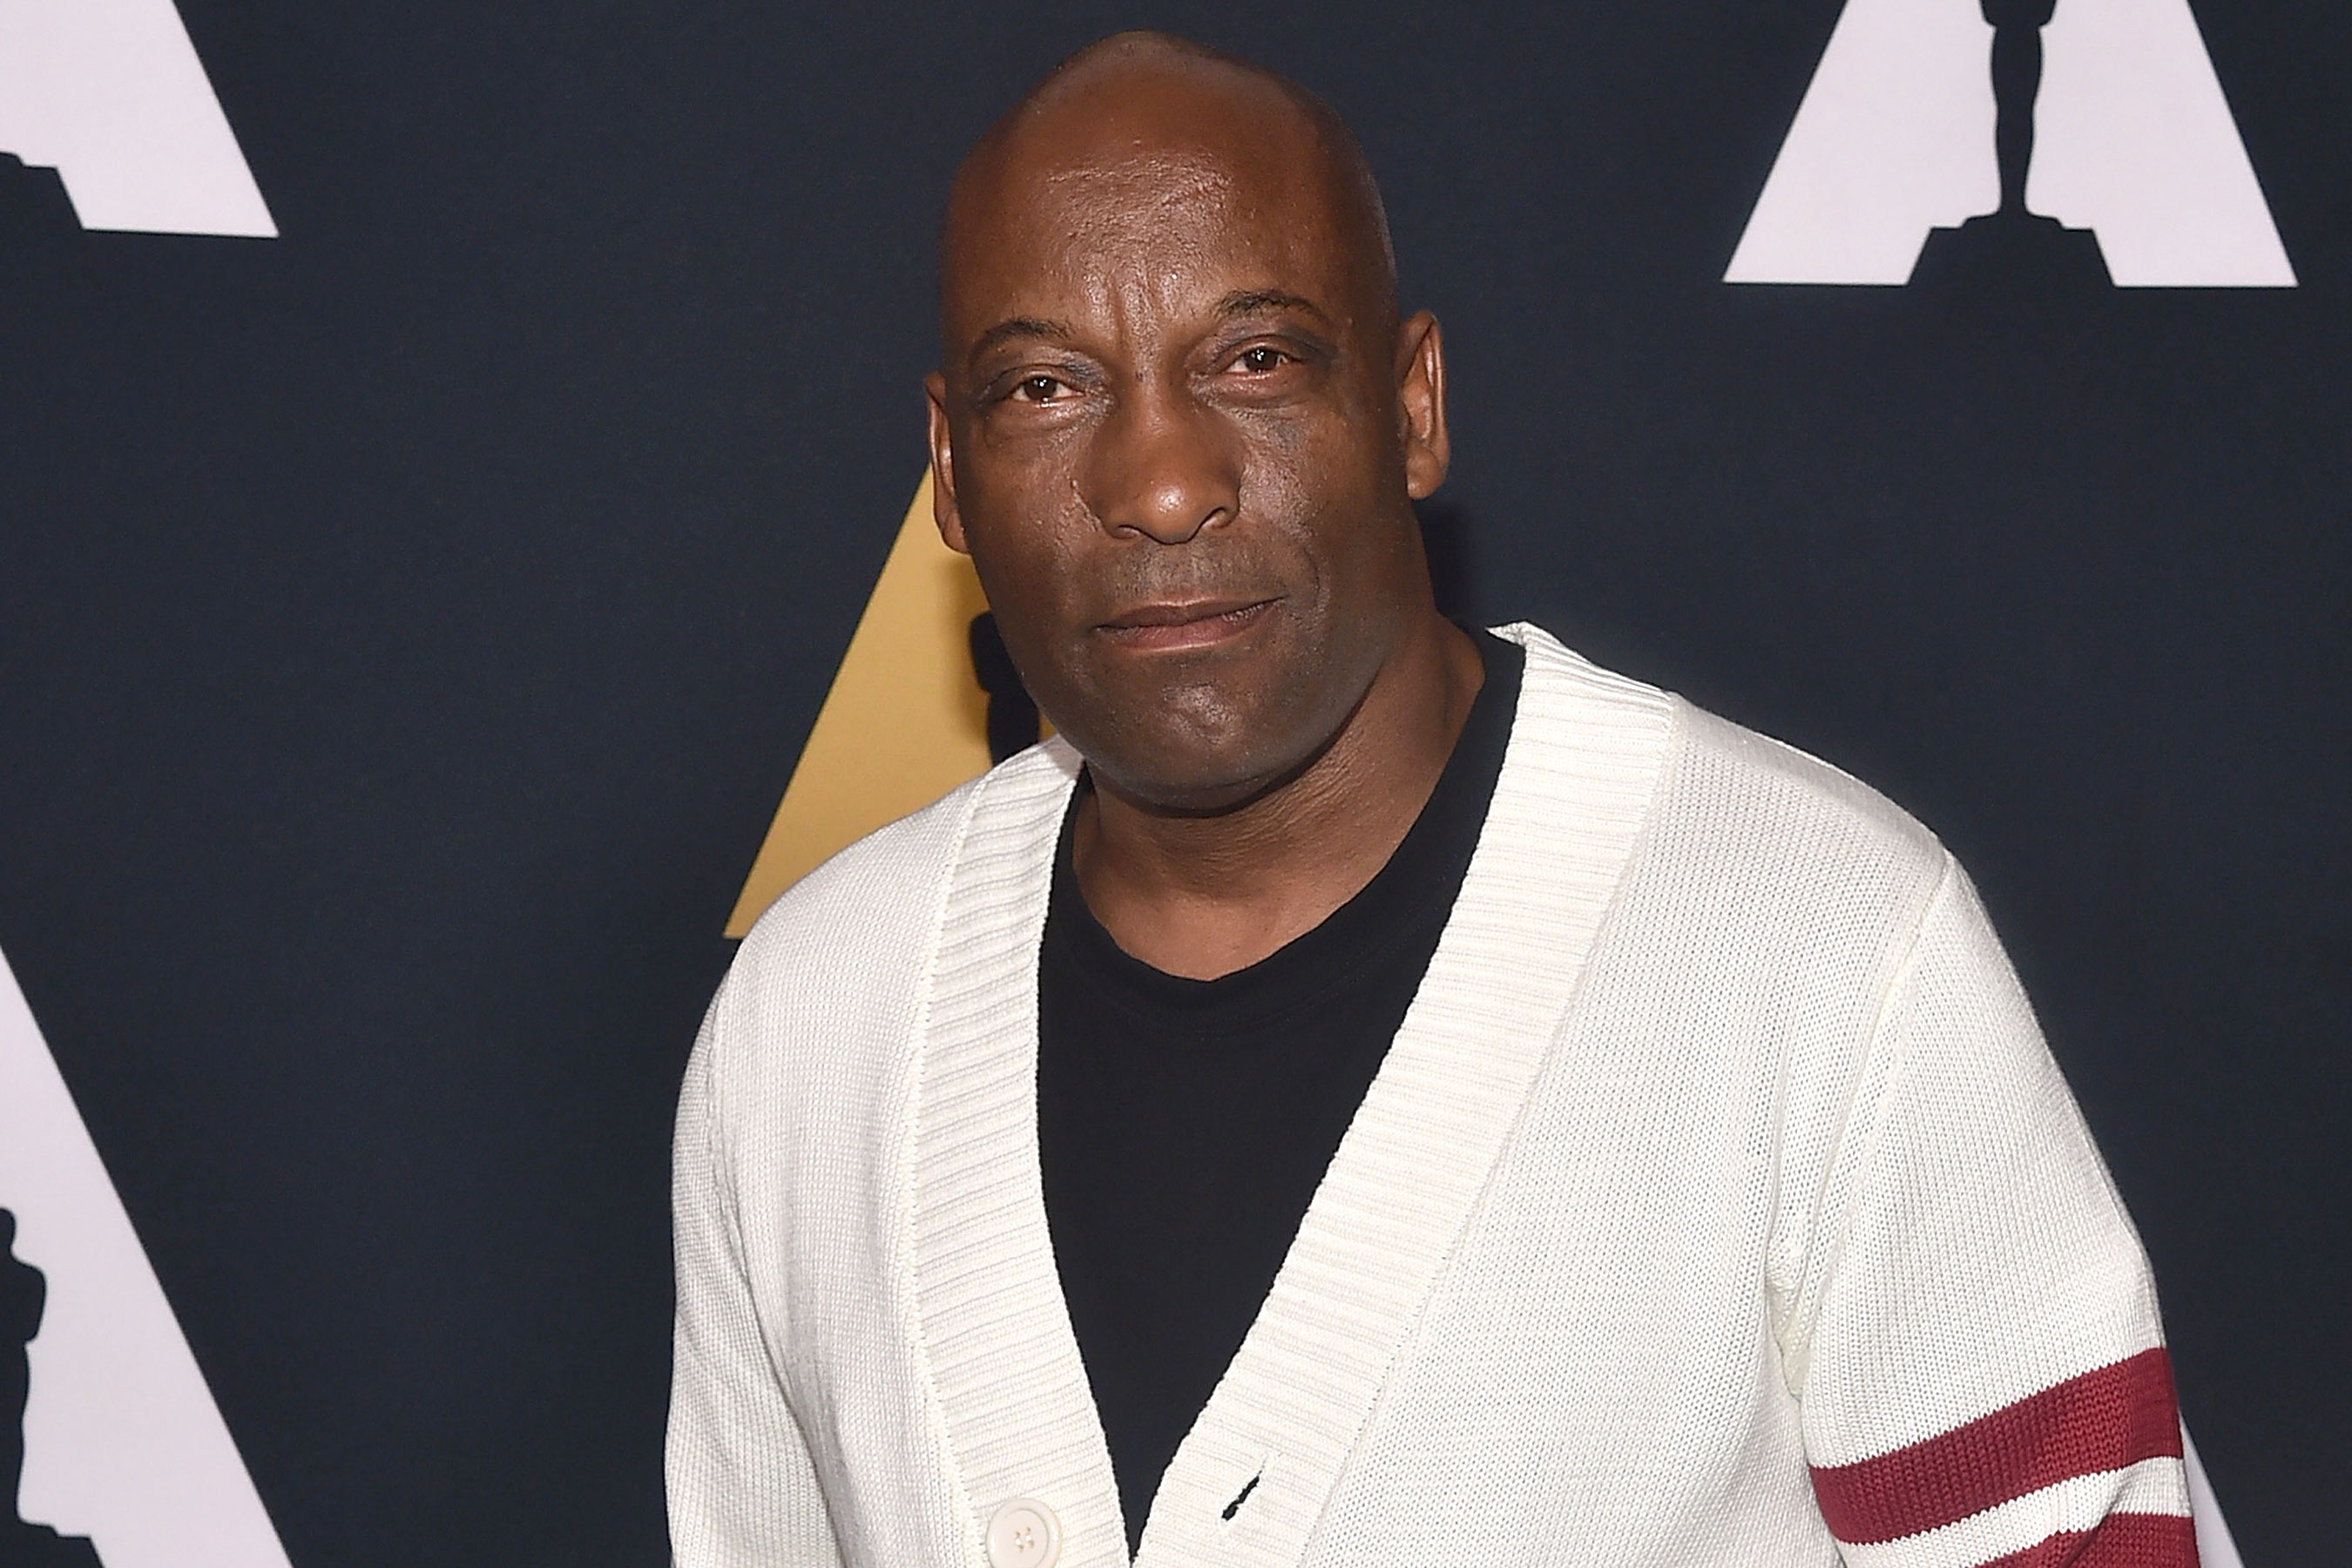 John Singleton is Still Alive Fighting for his Life Despite Reports